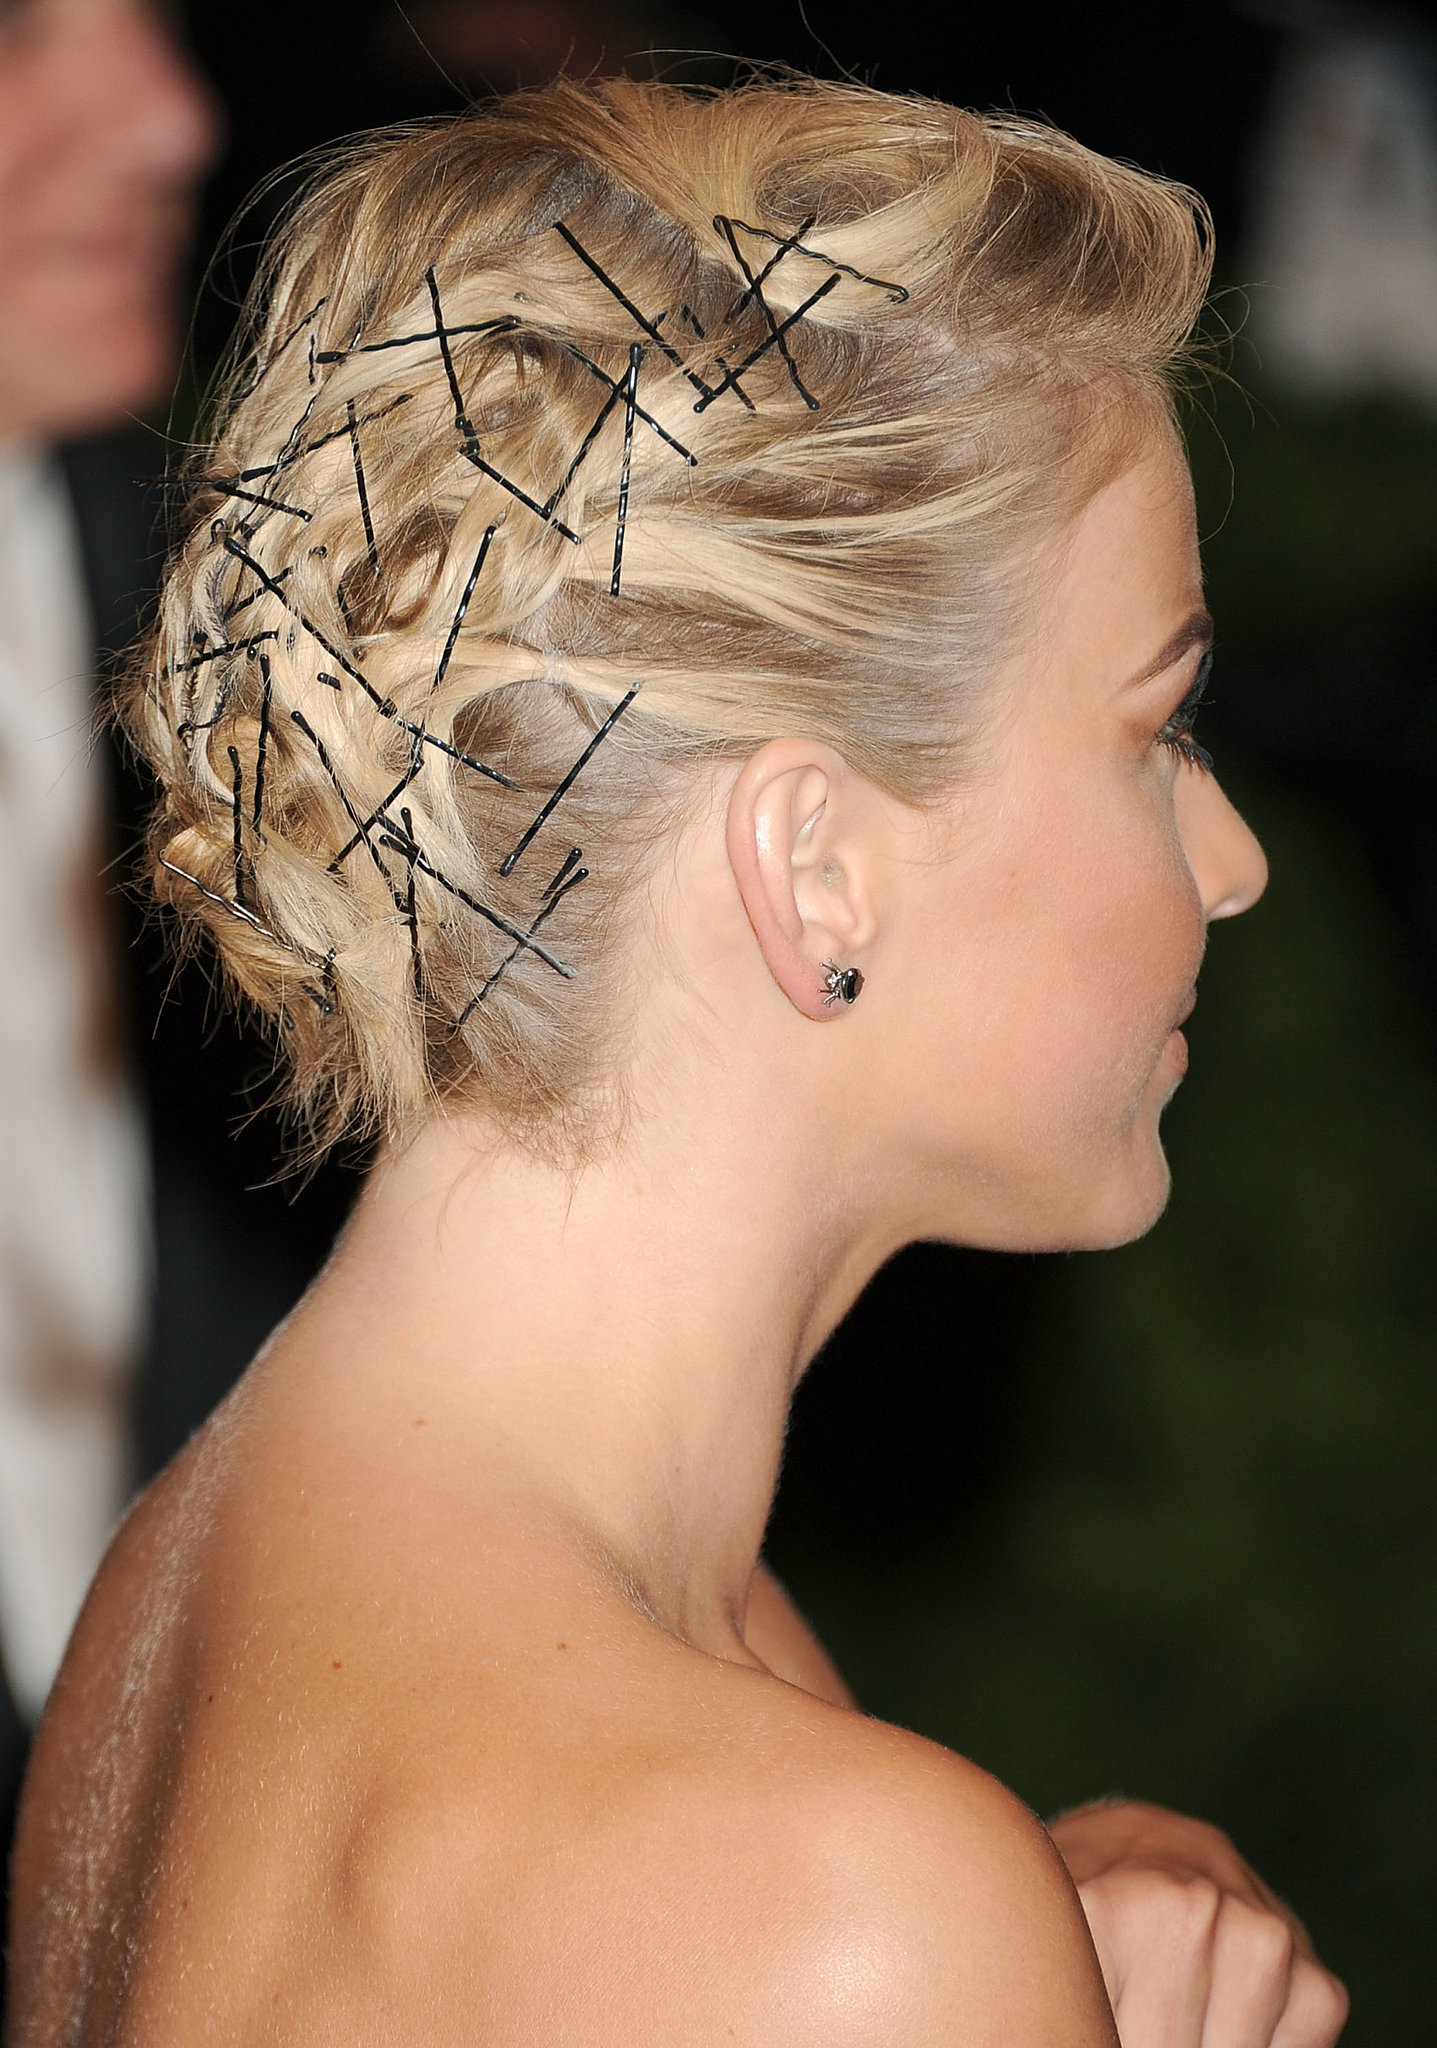 Bobby Pins Were The Focus Of Julianne Hough S Met Gala Hairstyle Bobby Pins Come Out Of